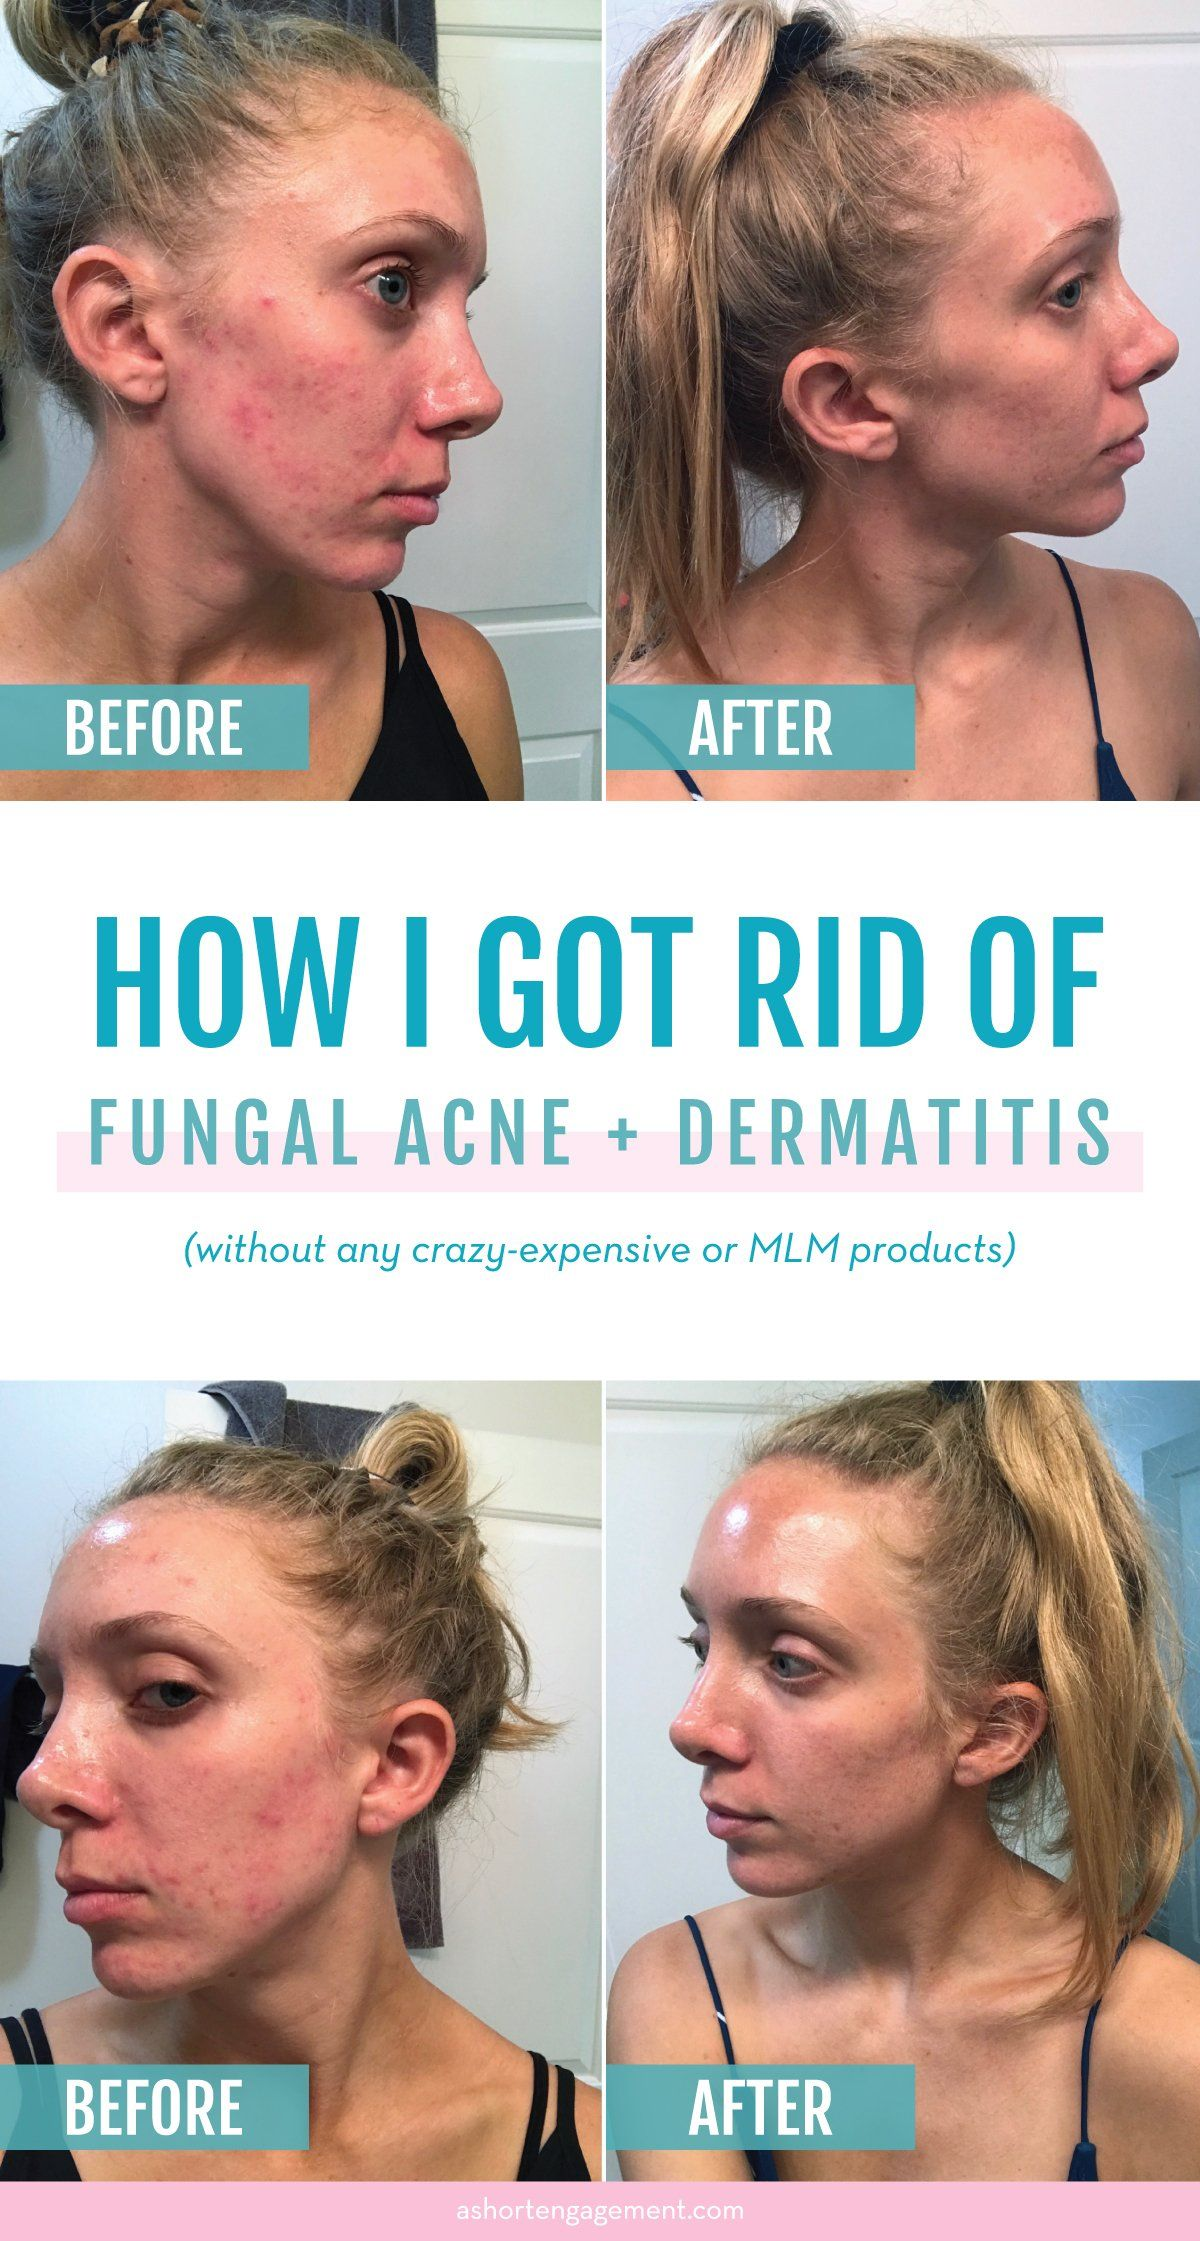 Acne Fungal Acne Or Dermatitis How I Cured The Worst Skin Of My